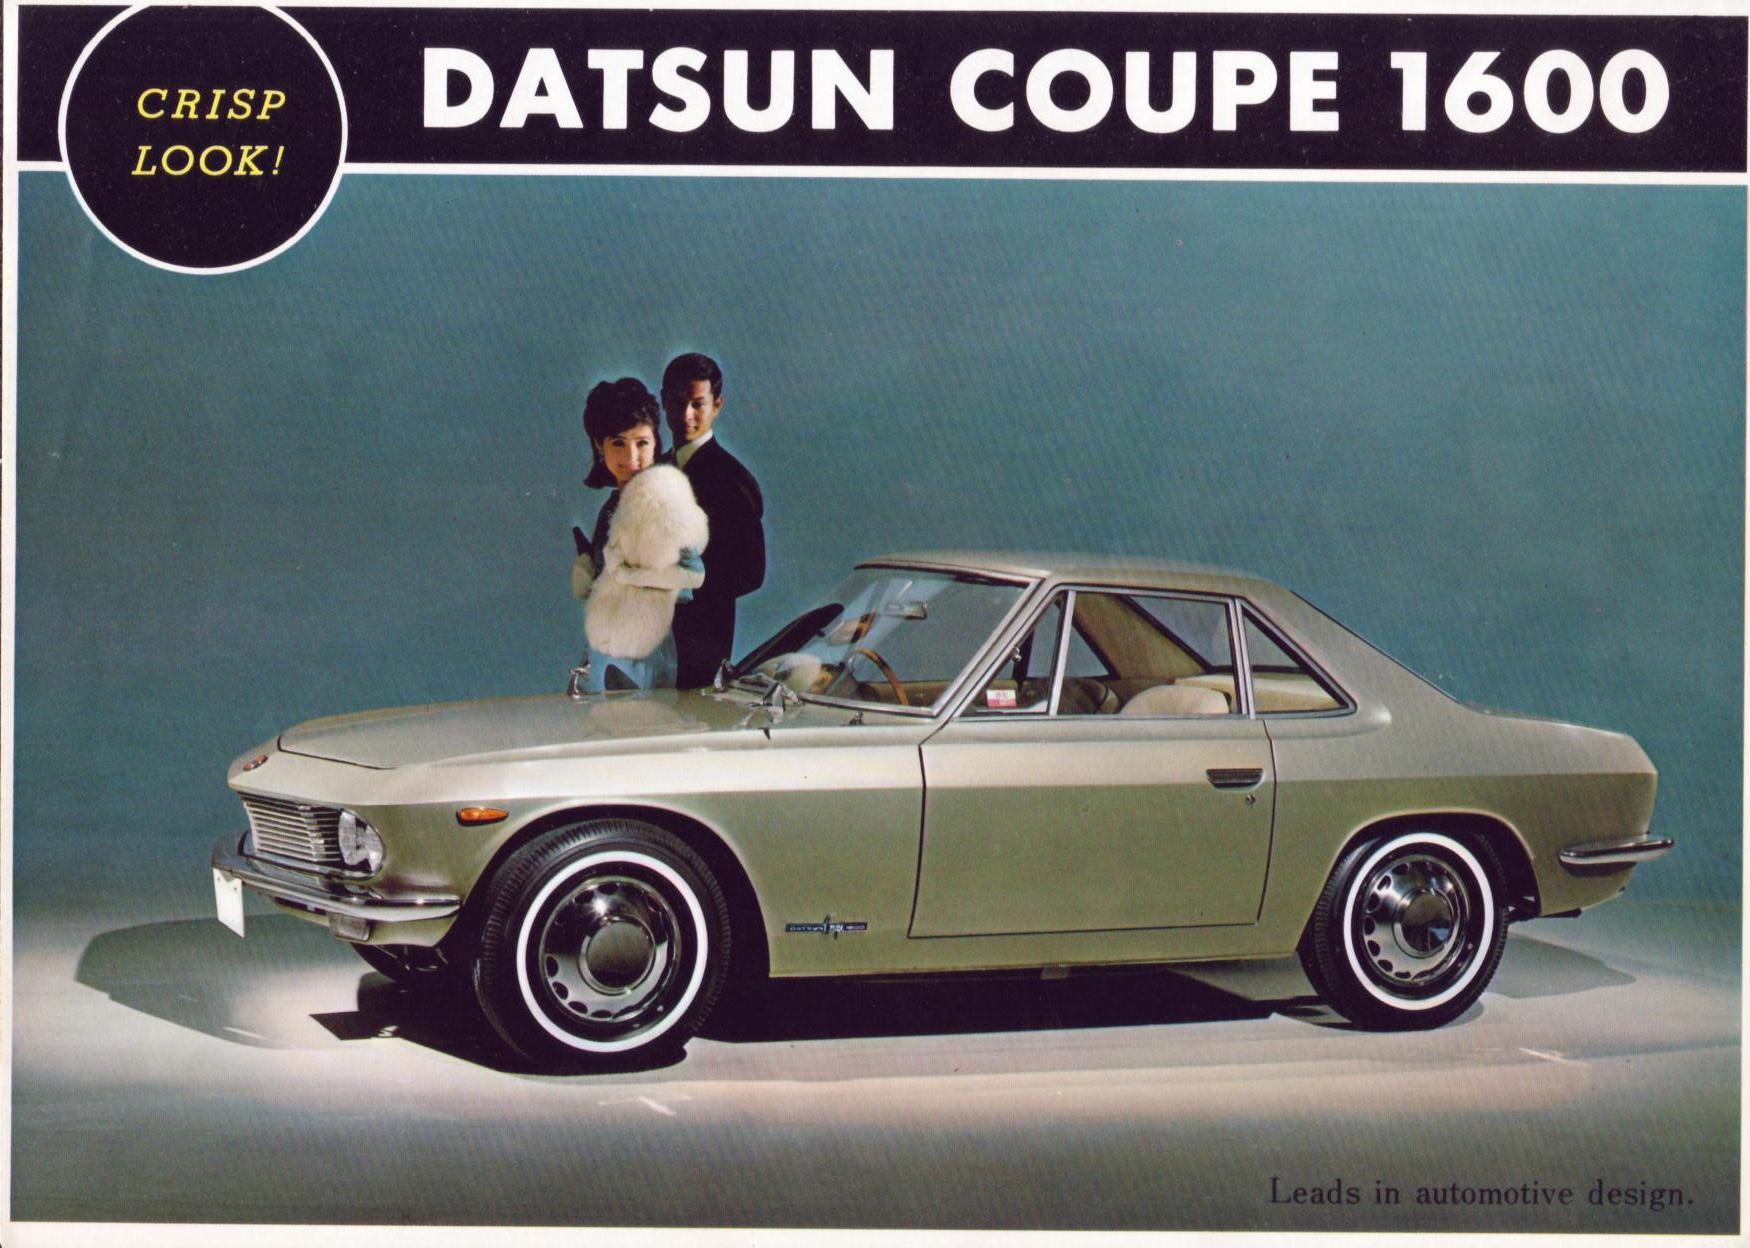 Coupe1600.JPG